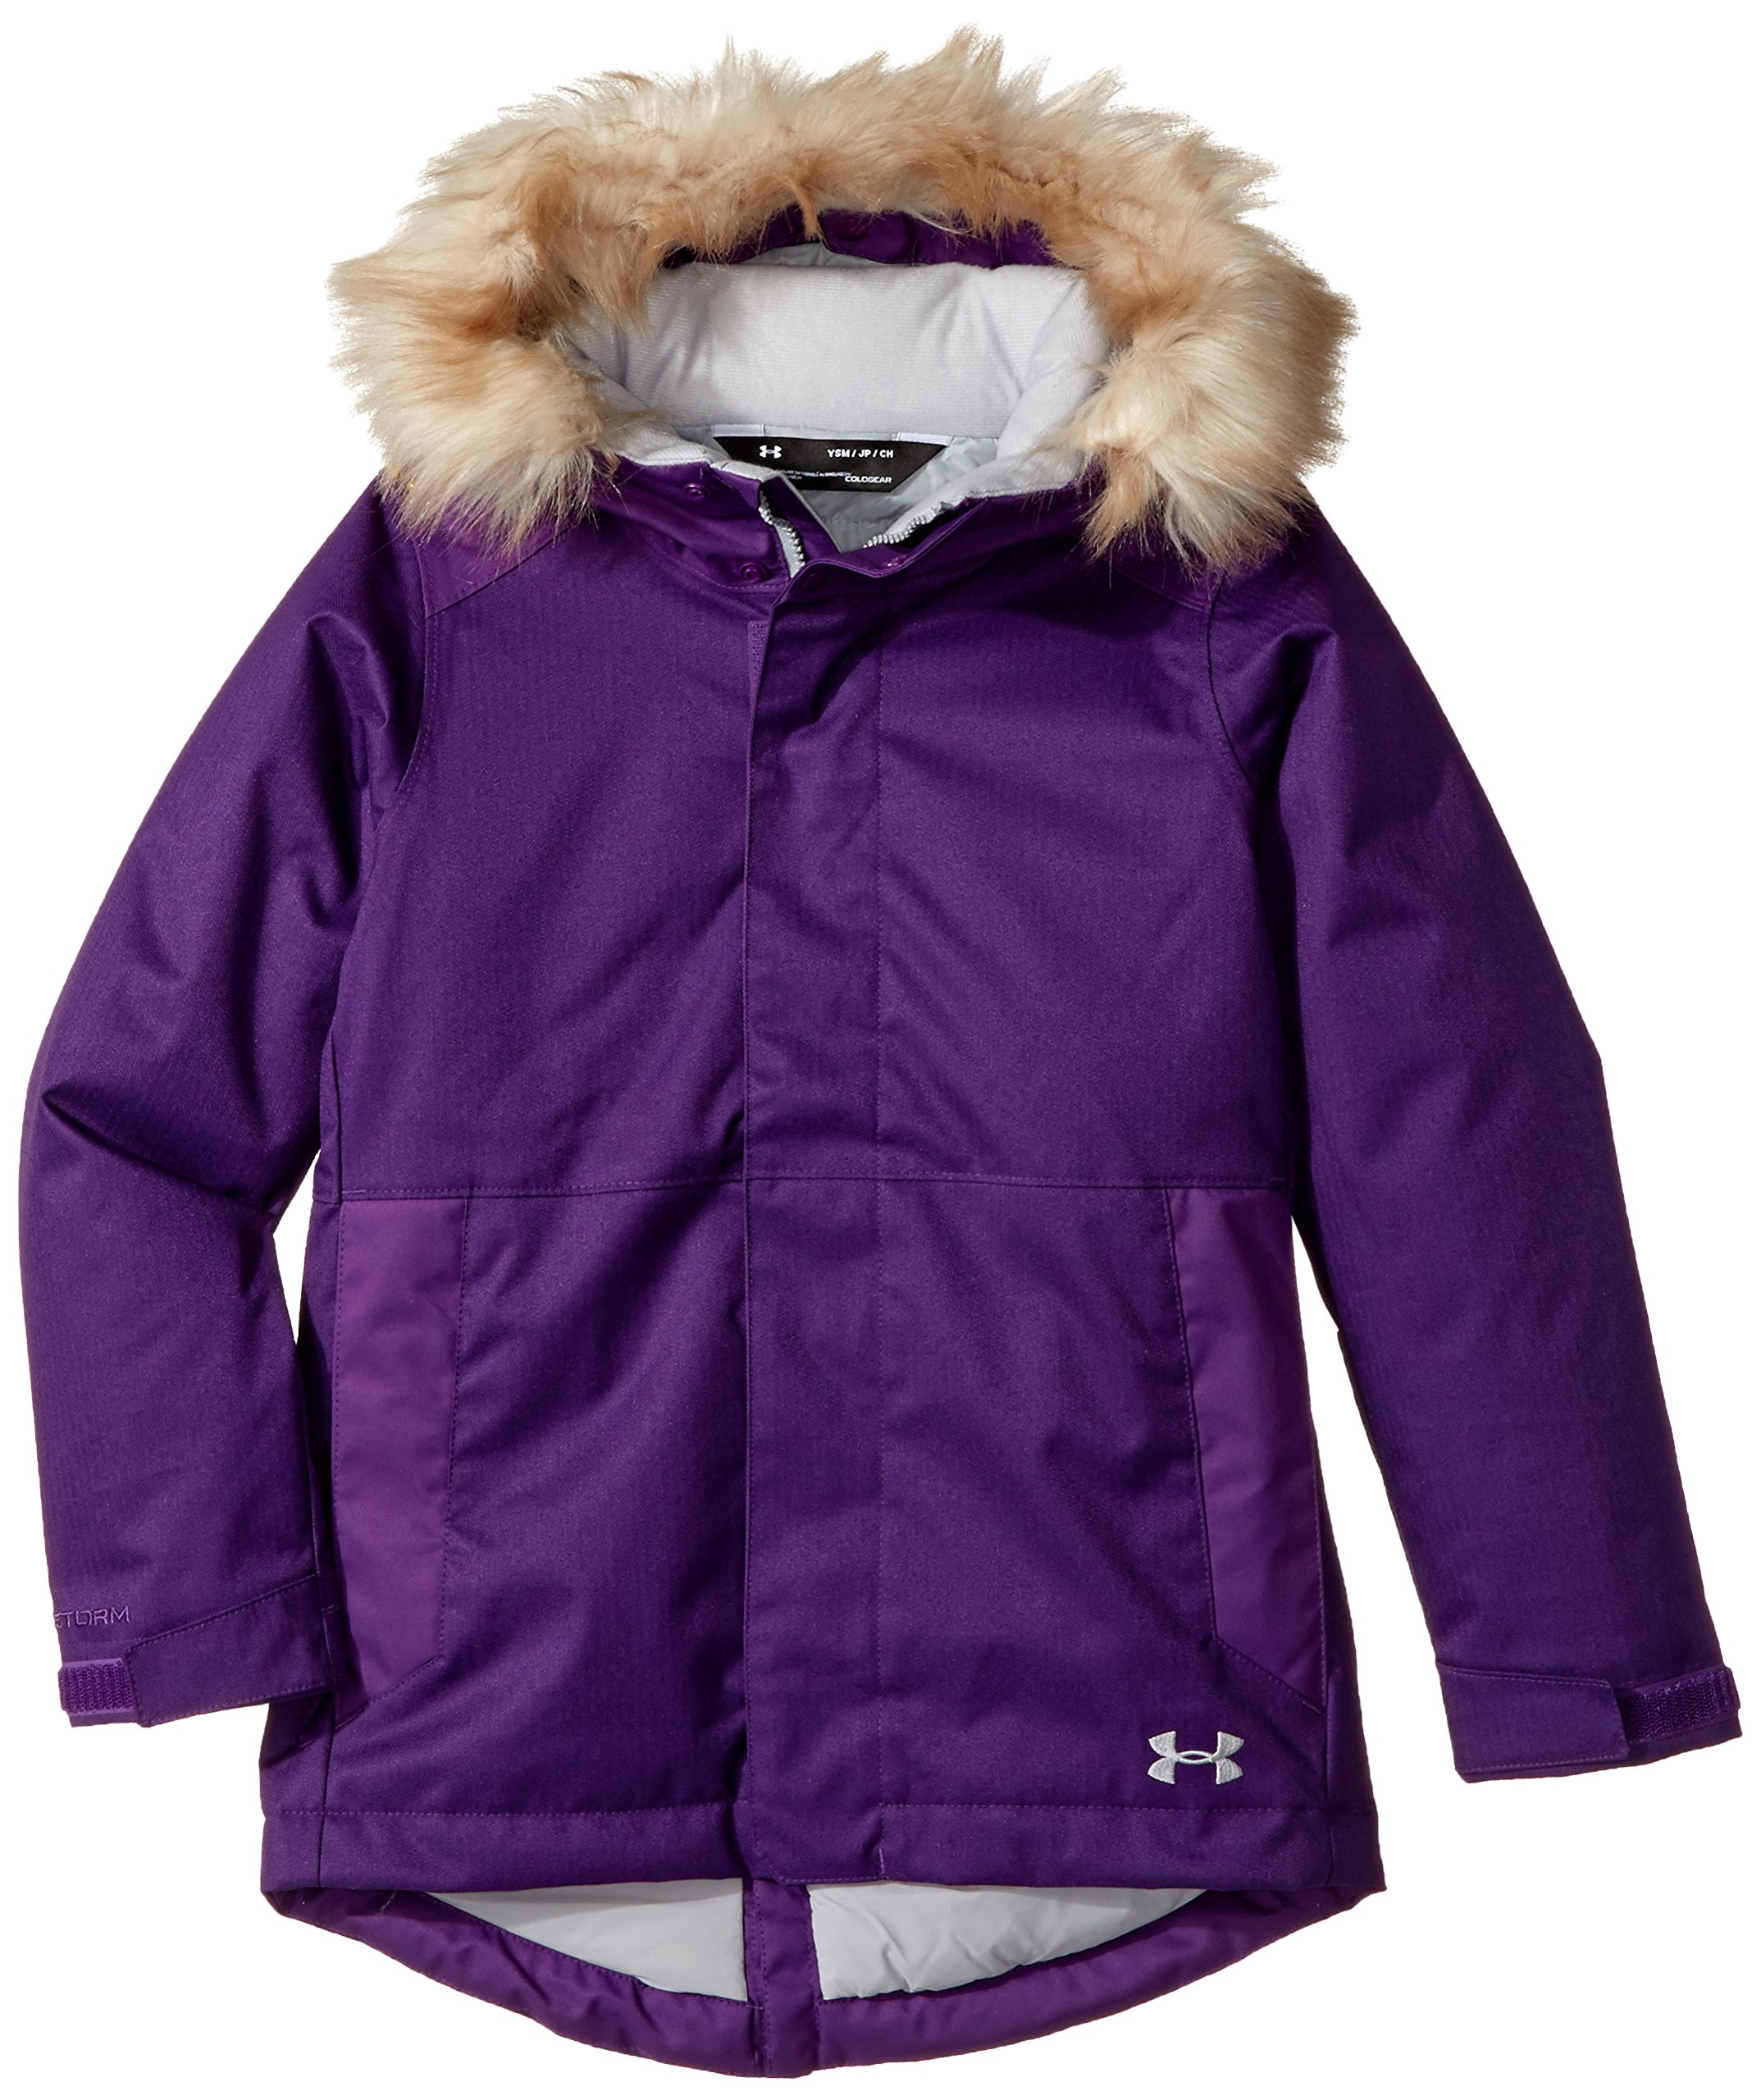 Under Armour Outerwear Girl's Under Armour Girls' Cgr Yonders Parka, Indulge/Overcast Gray, Youth Medium